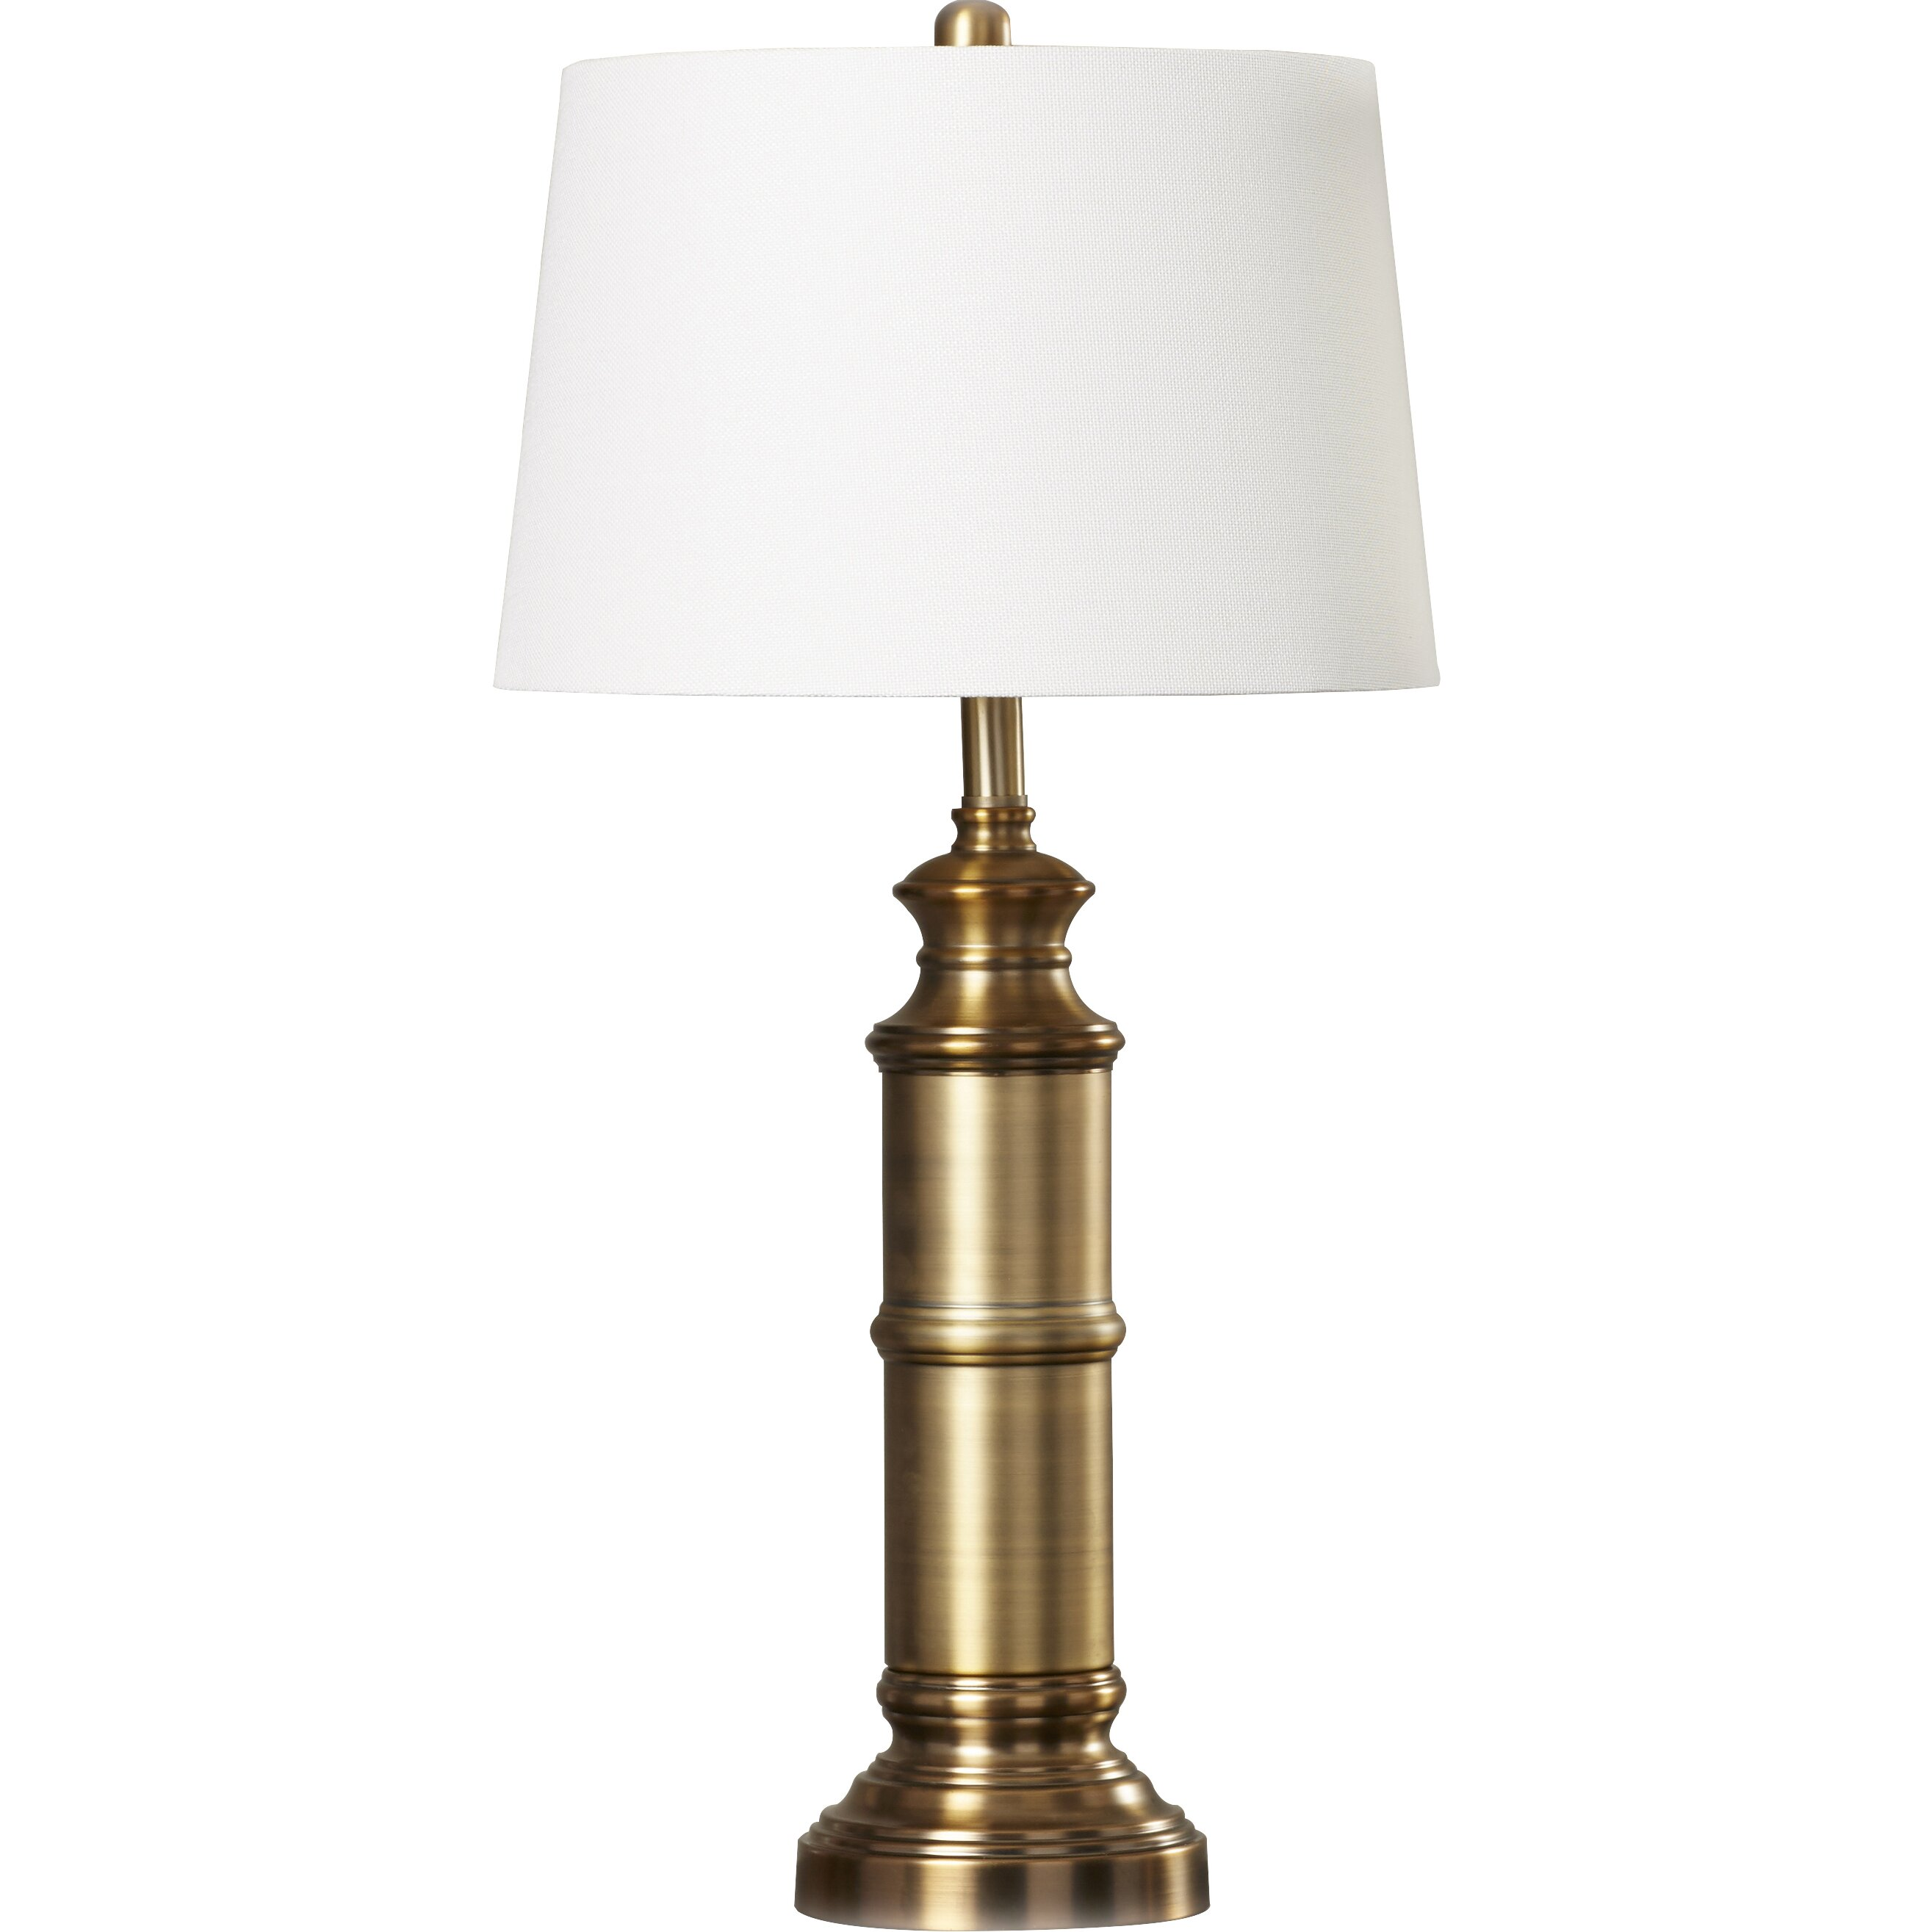 Breakwater Bay Costigan 305 Table Lamps Set Of 2